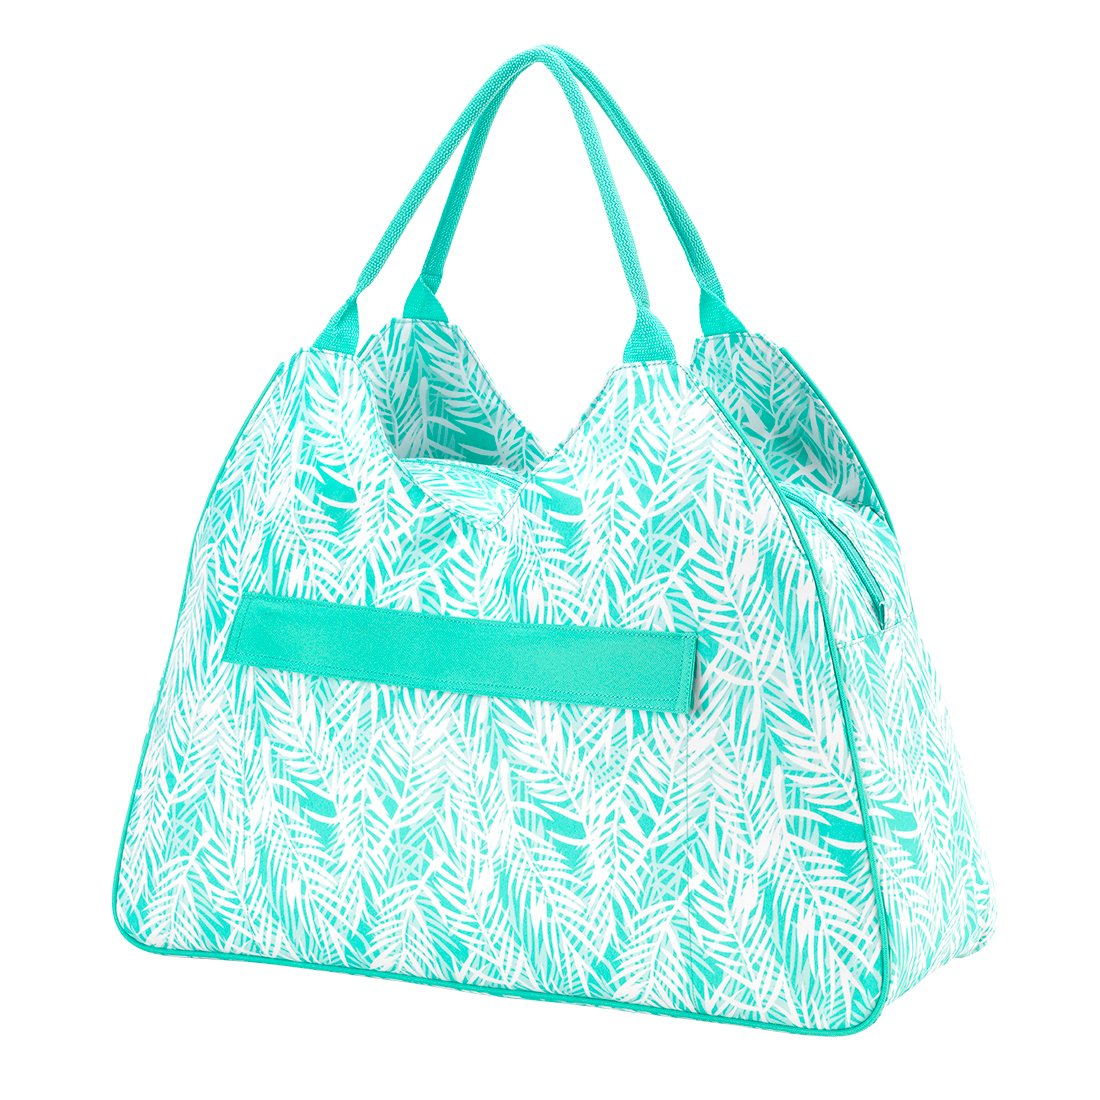 Monogrammed Poolside Palm High Fashion Print Water Resistant Large Beach Bag Tote with Zipper Top